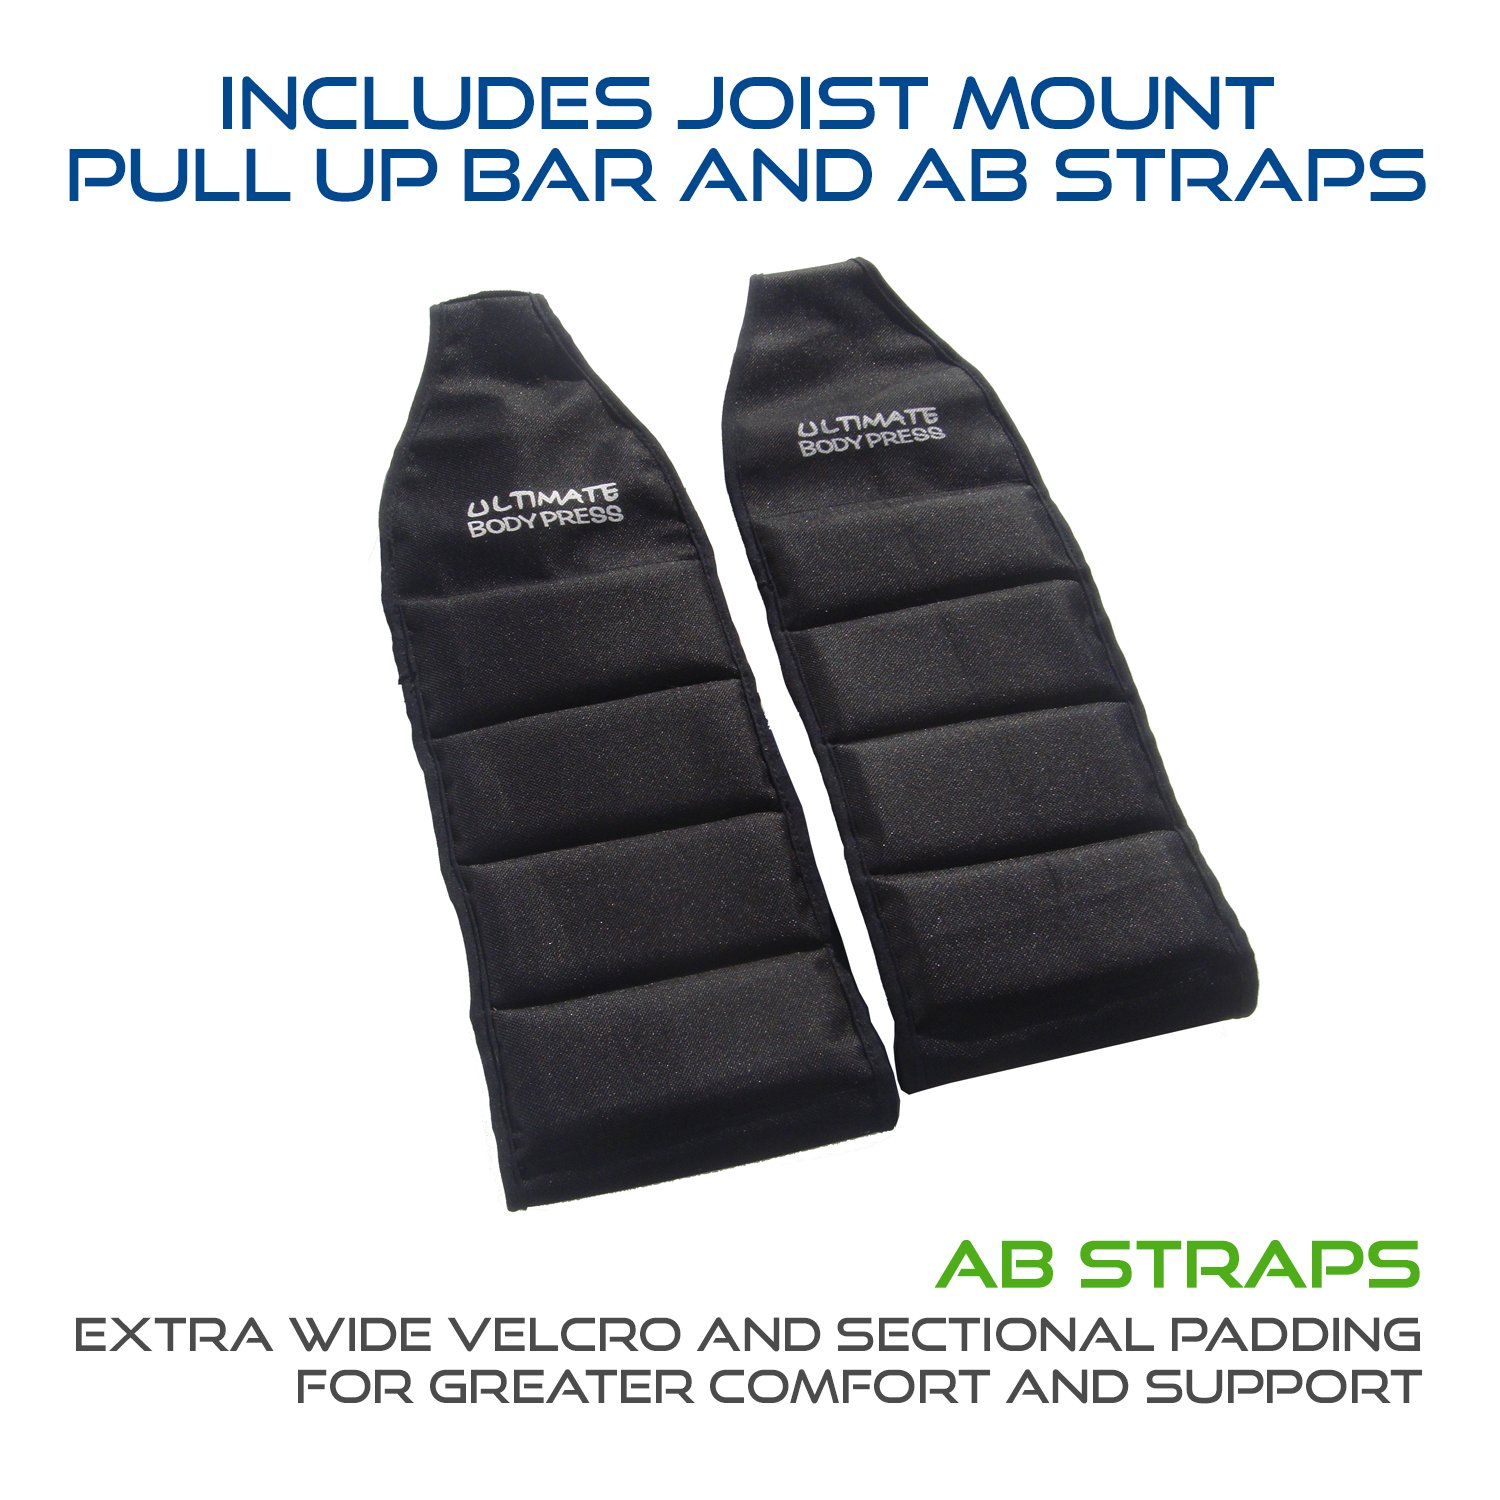 Ultimate Body Press Joist Mount Pull Up Bar + Ab Straps by Ultimate Body Press (Image #2)